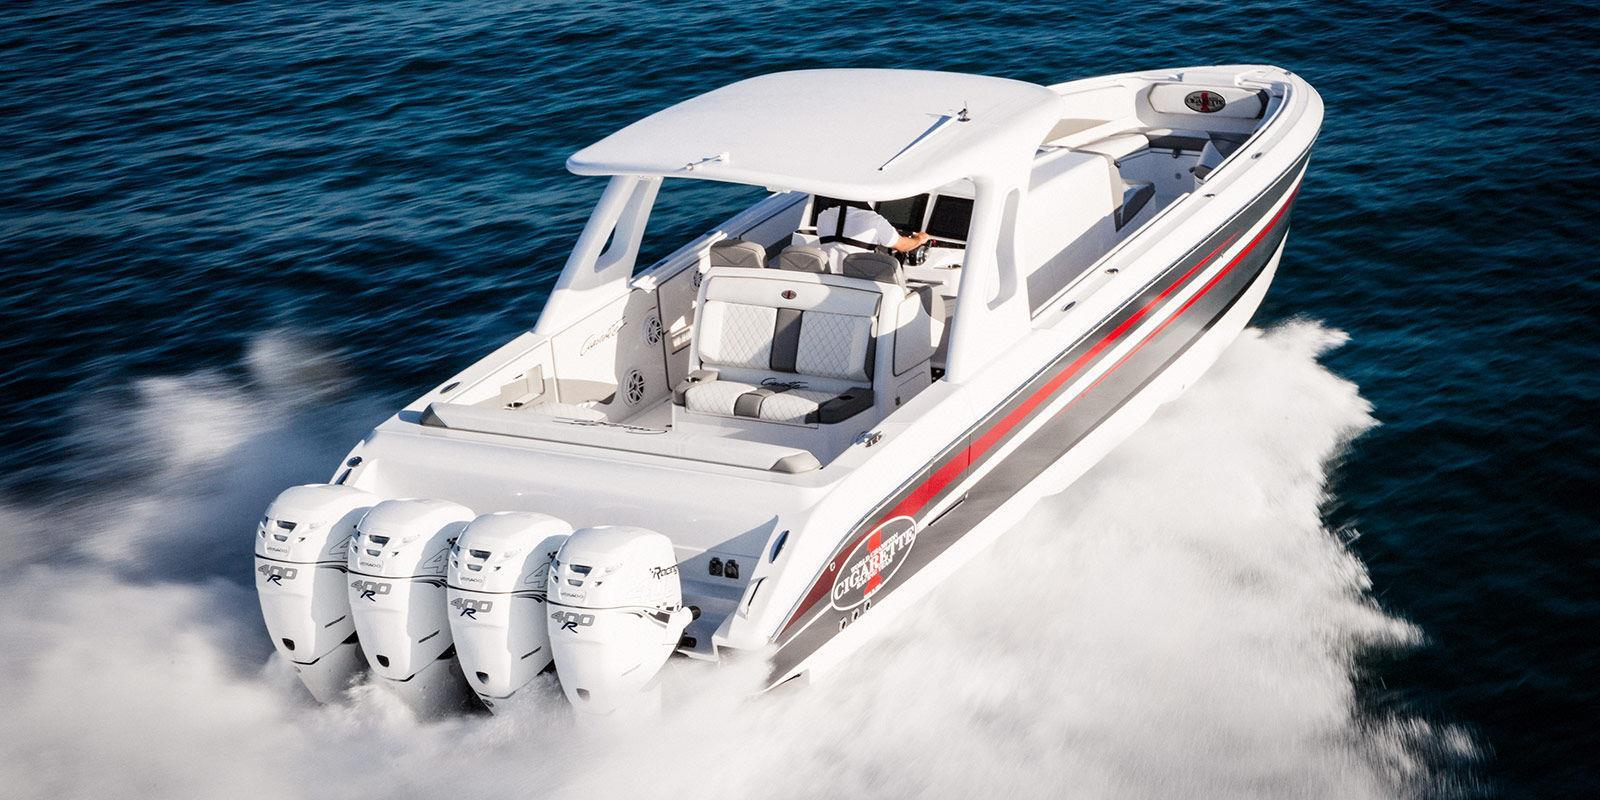 US outboard engine sales reached a 12-year high in 2018